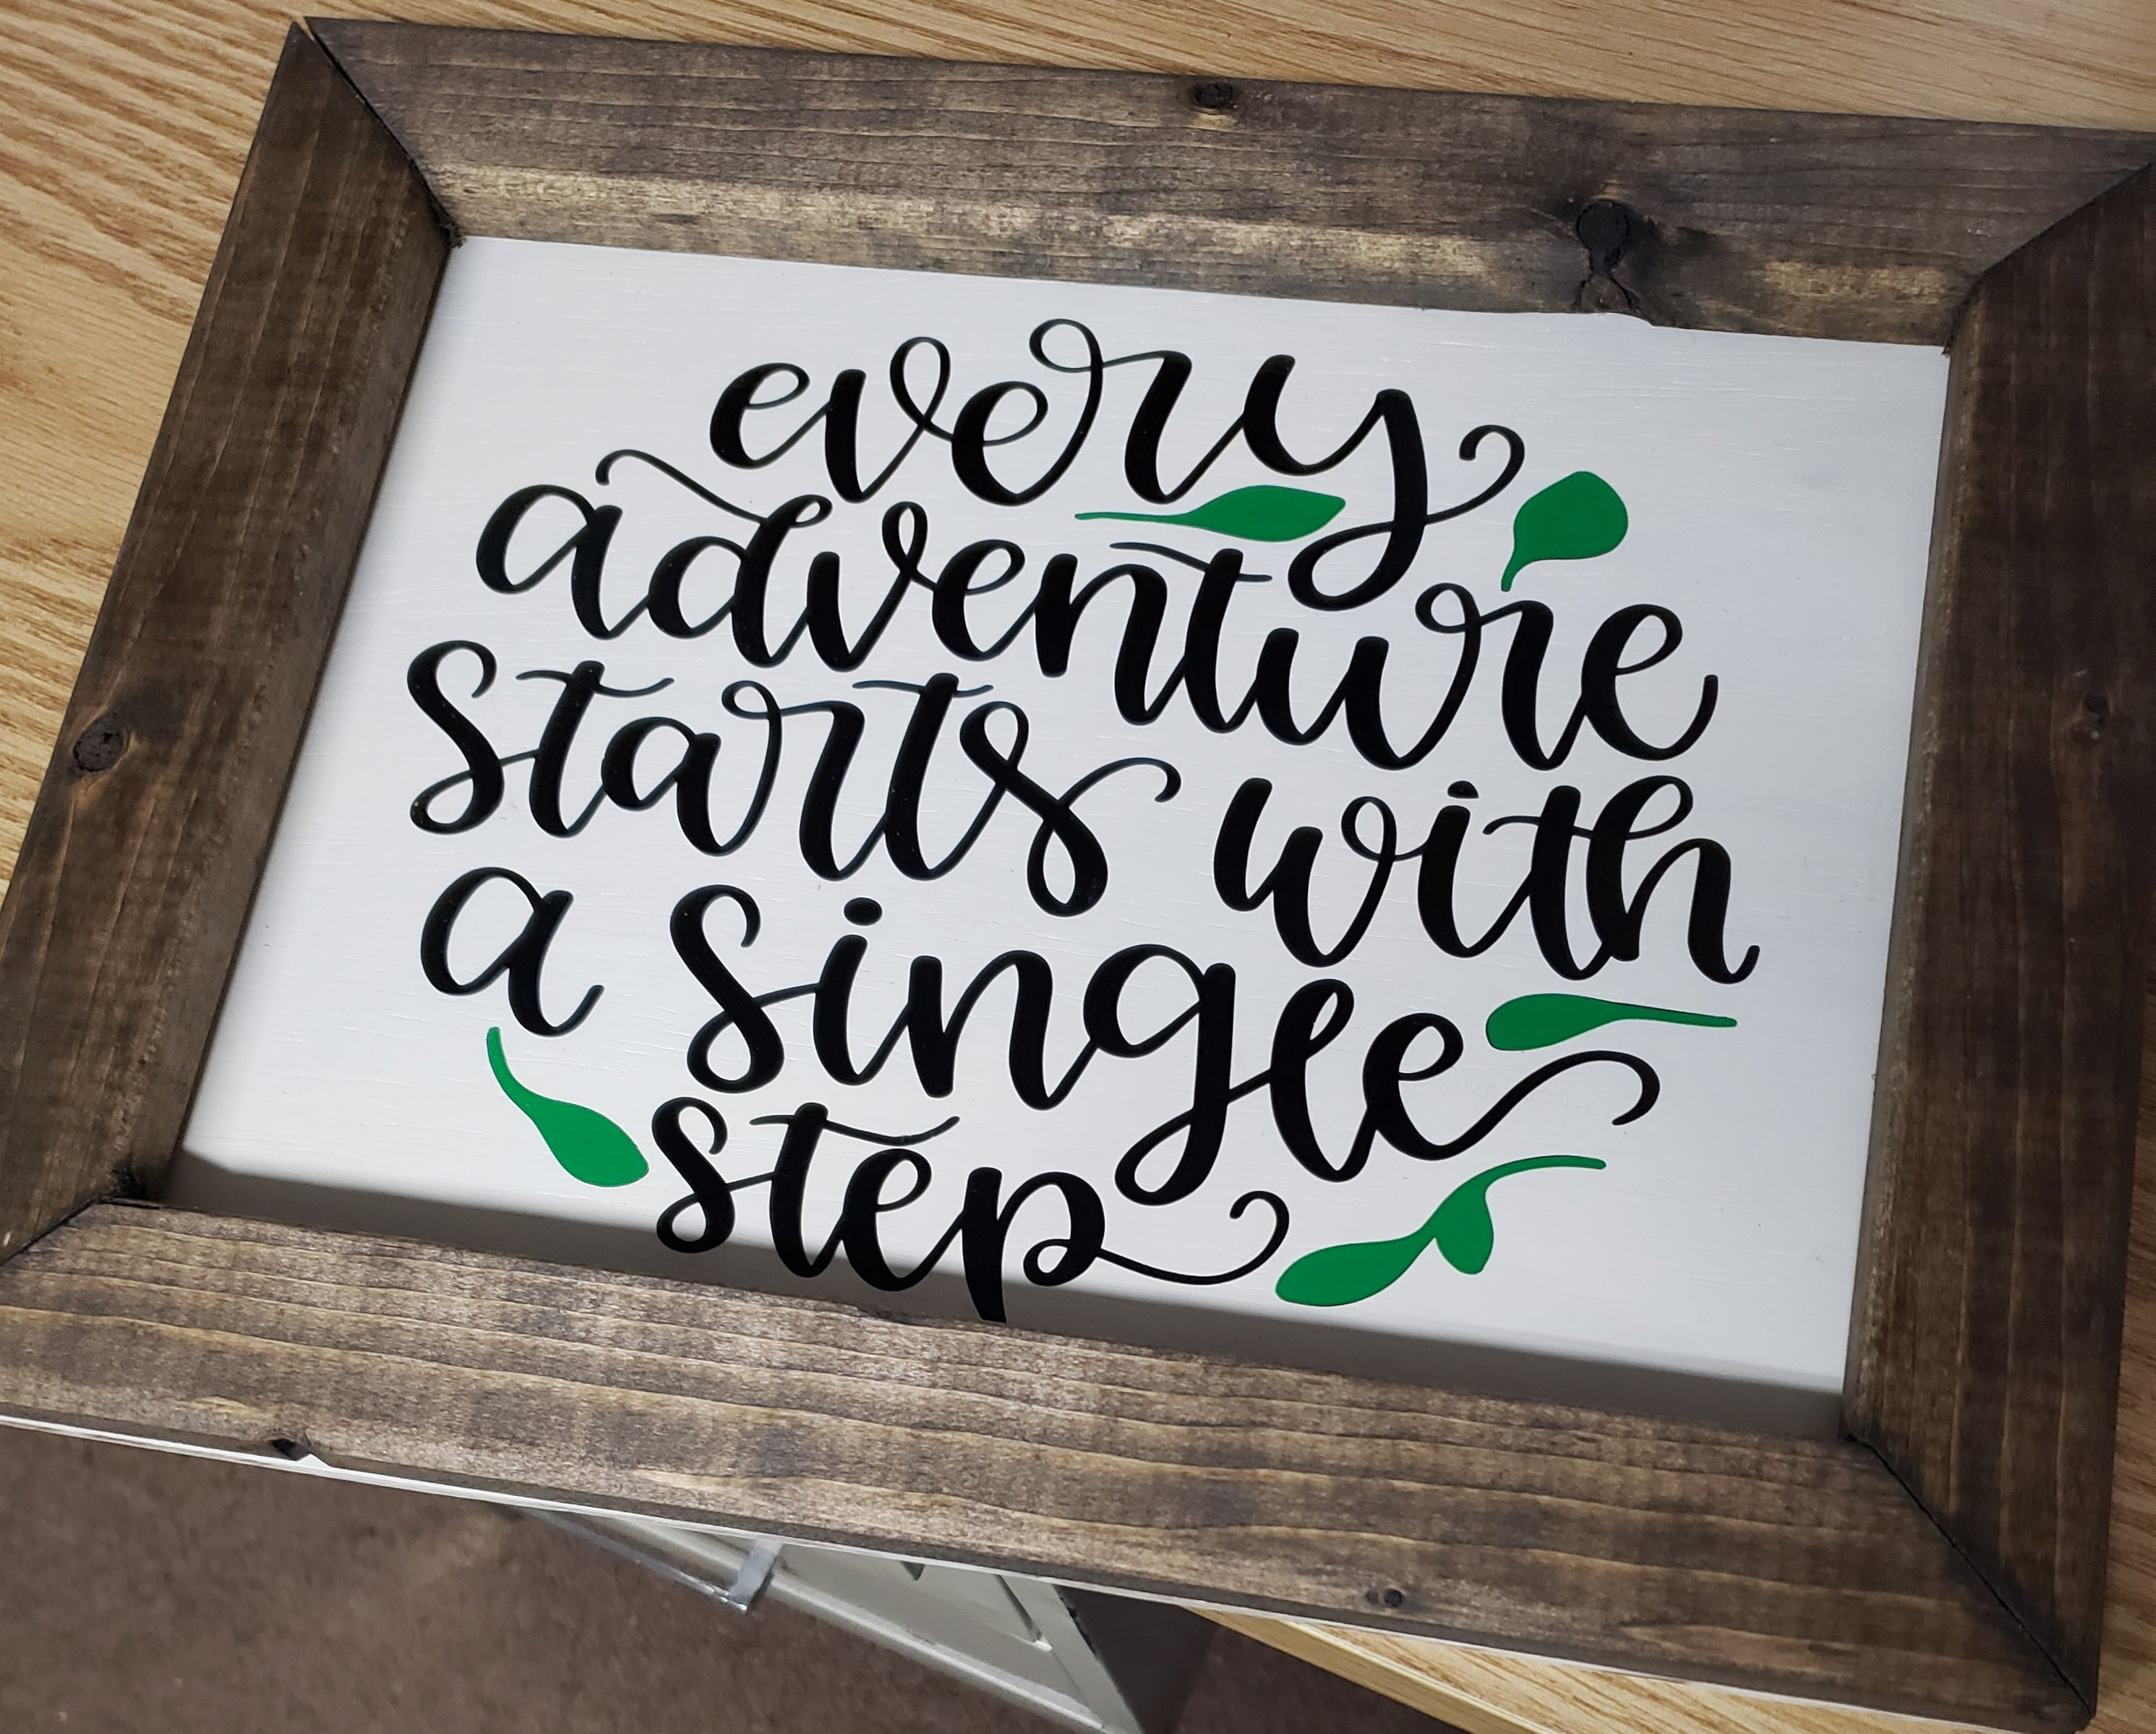 Every adventure starts with a single step